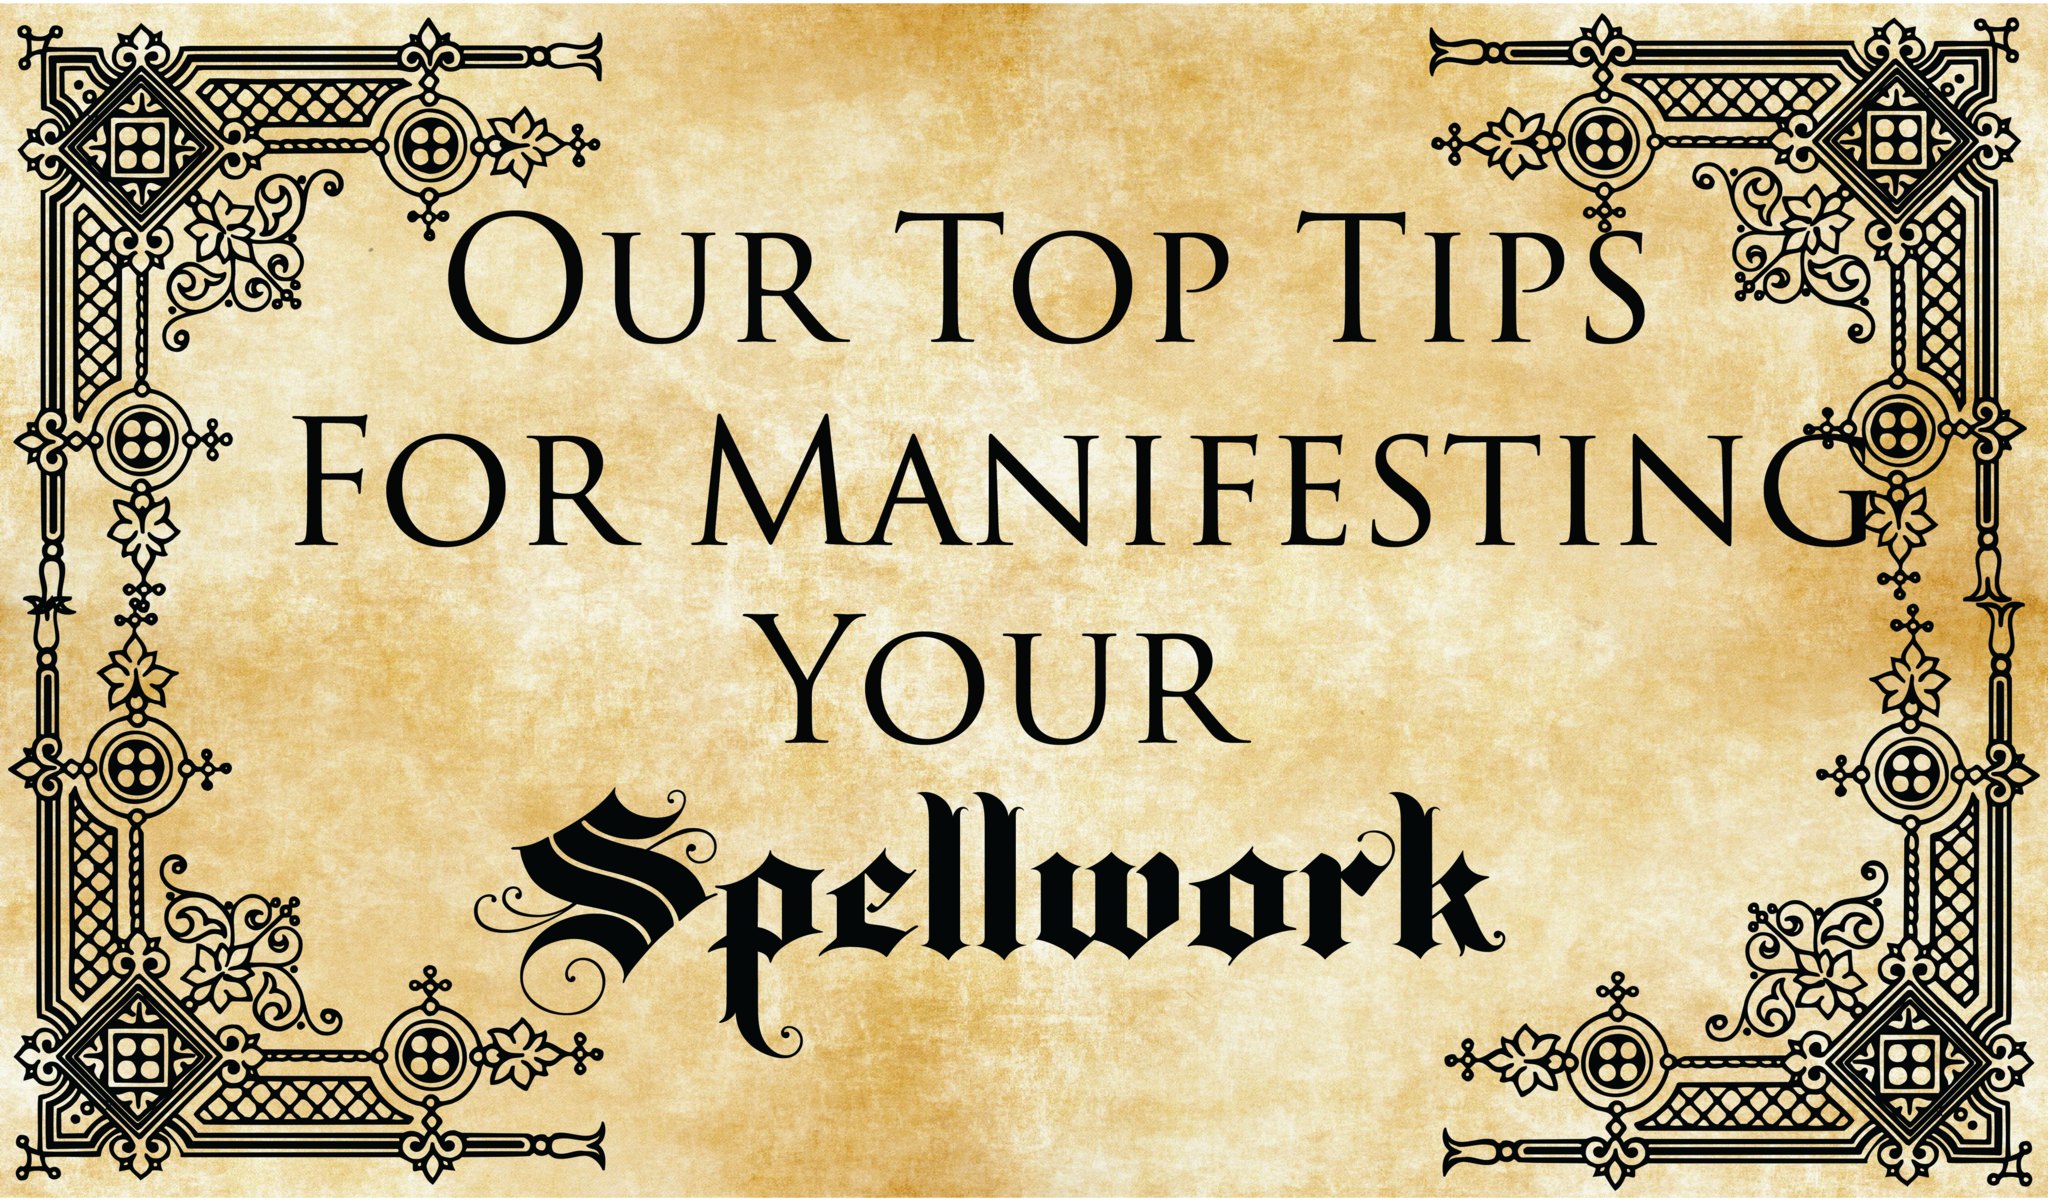 Our Top Tips for Manifesting your Spellwork